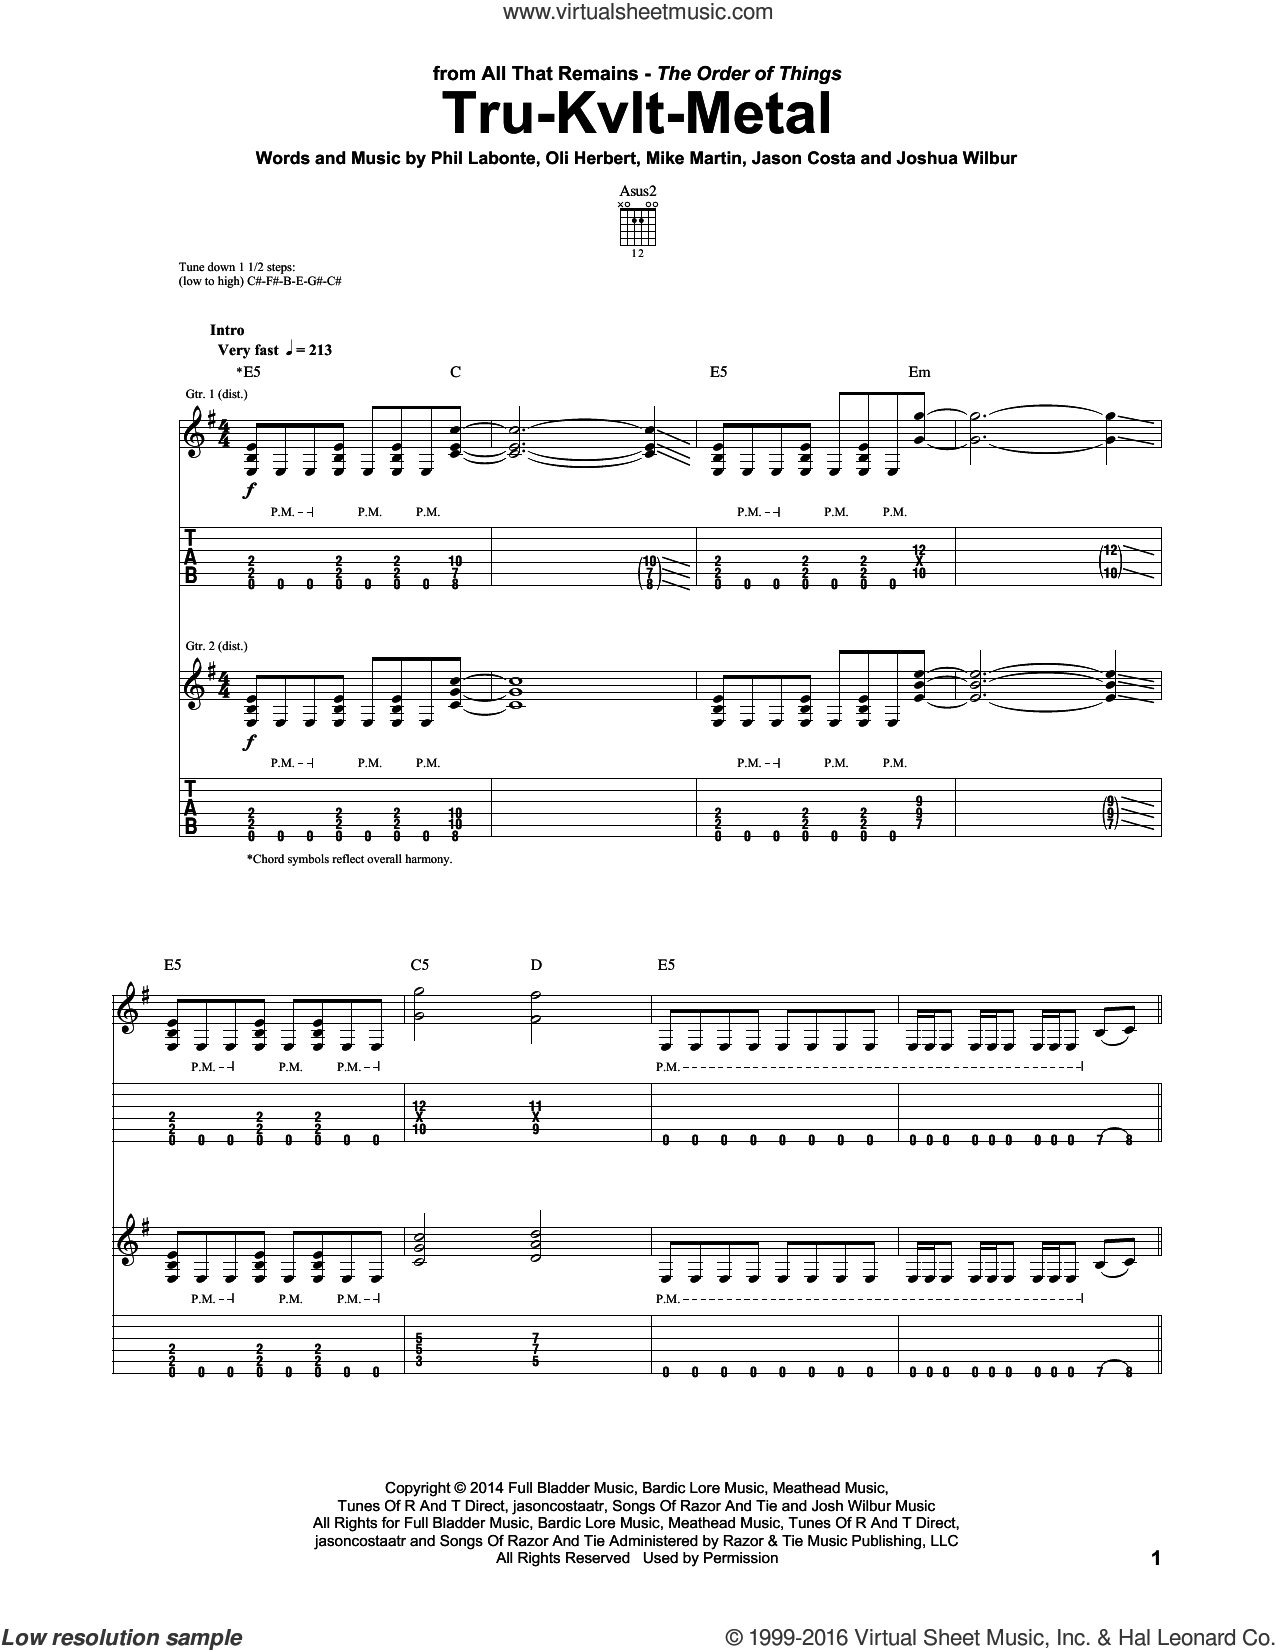 Tru-Kvlt-Metal sheet music for guitar (tablature) by All That Remains. Score Image Preview.